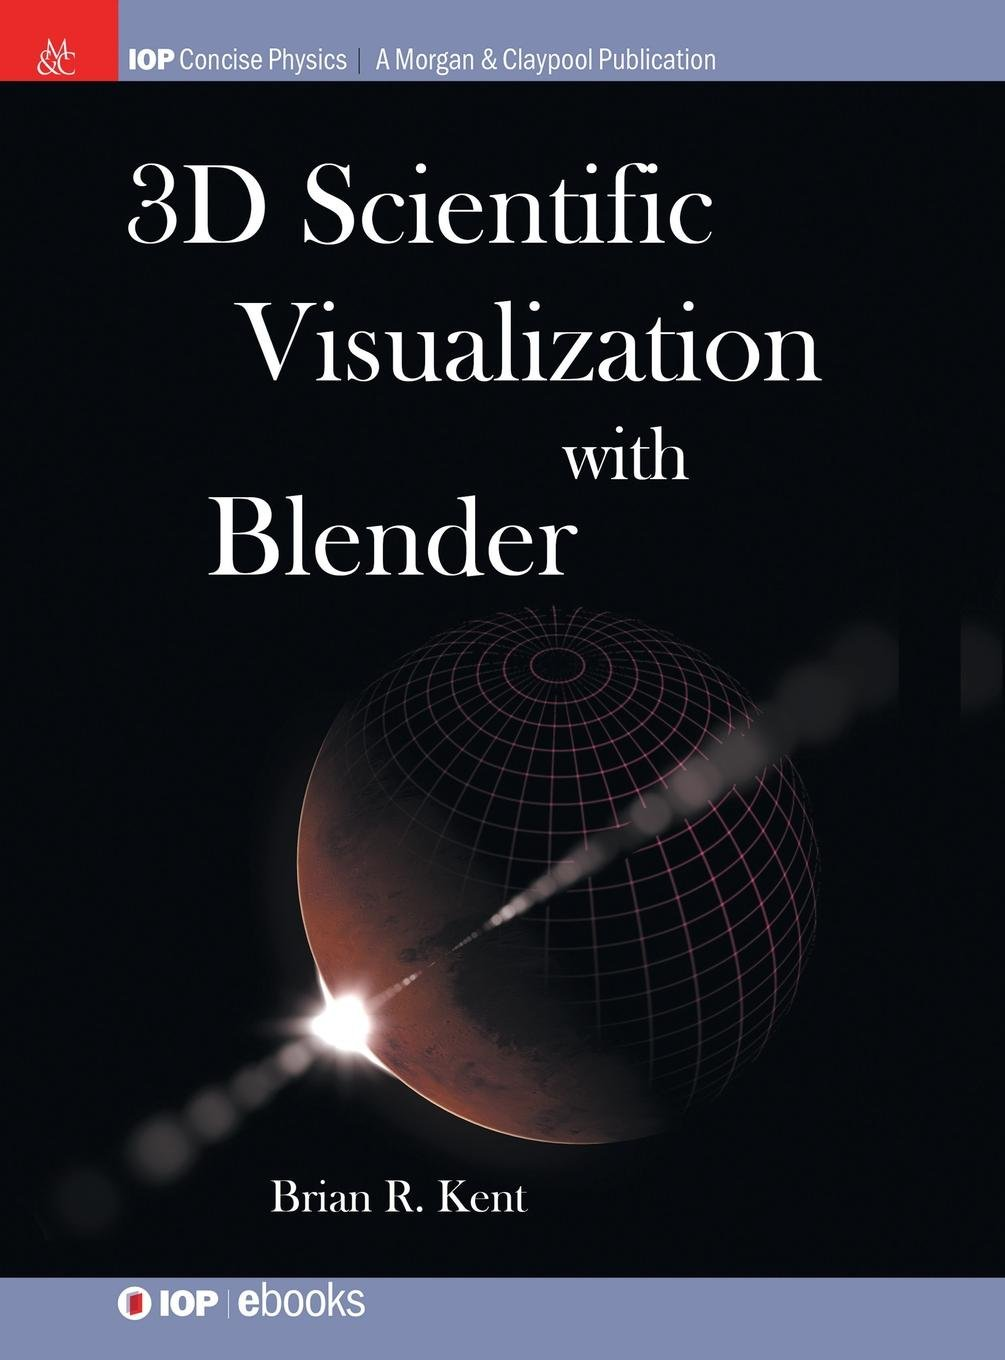 Download 3D Scientific Visualization with Blender (Iop Concise Physics) pdf